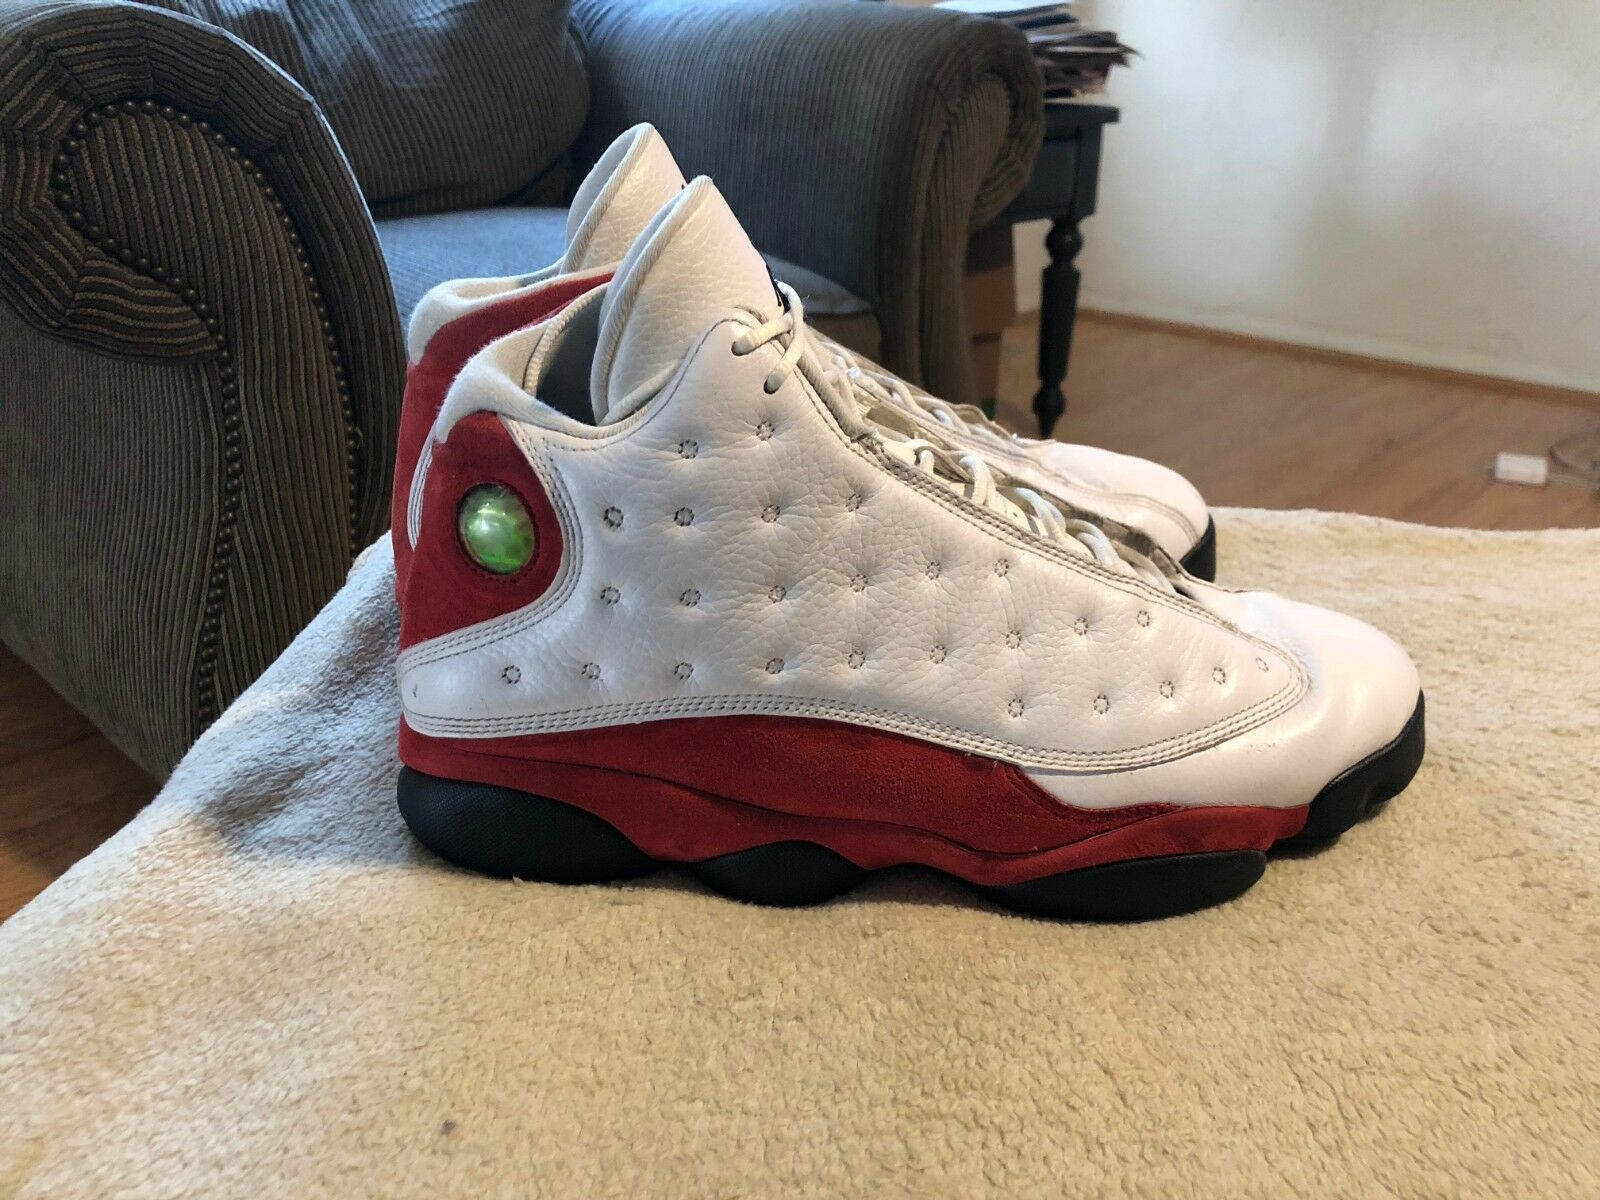 2010 Retro Jordan XIII Red White Cherry Comfortable Seasonal price cuts, discount benefits